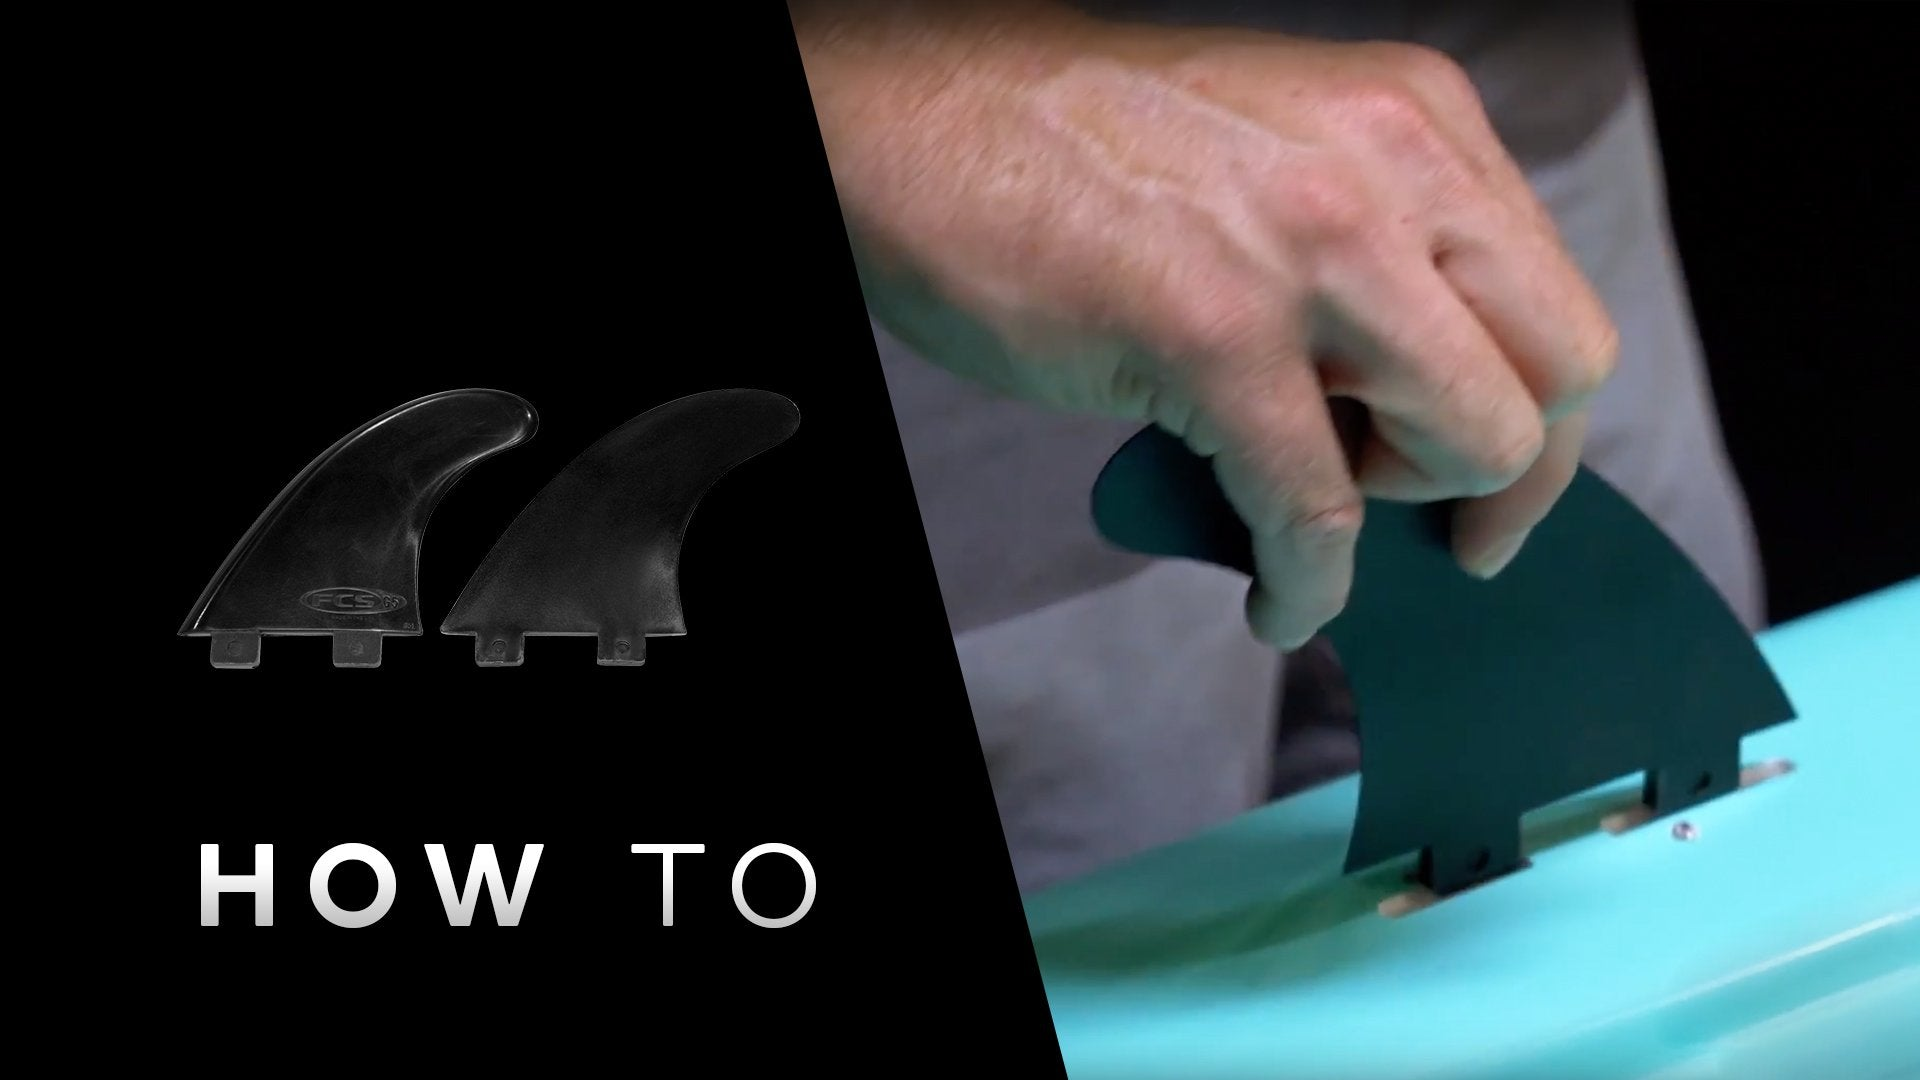 How to install side fins on your BOTE paddle board